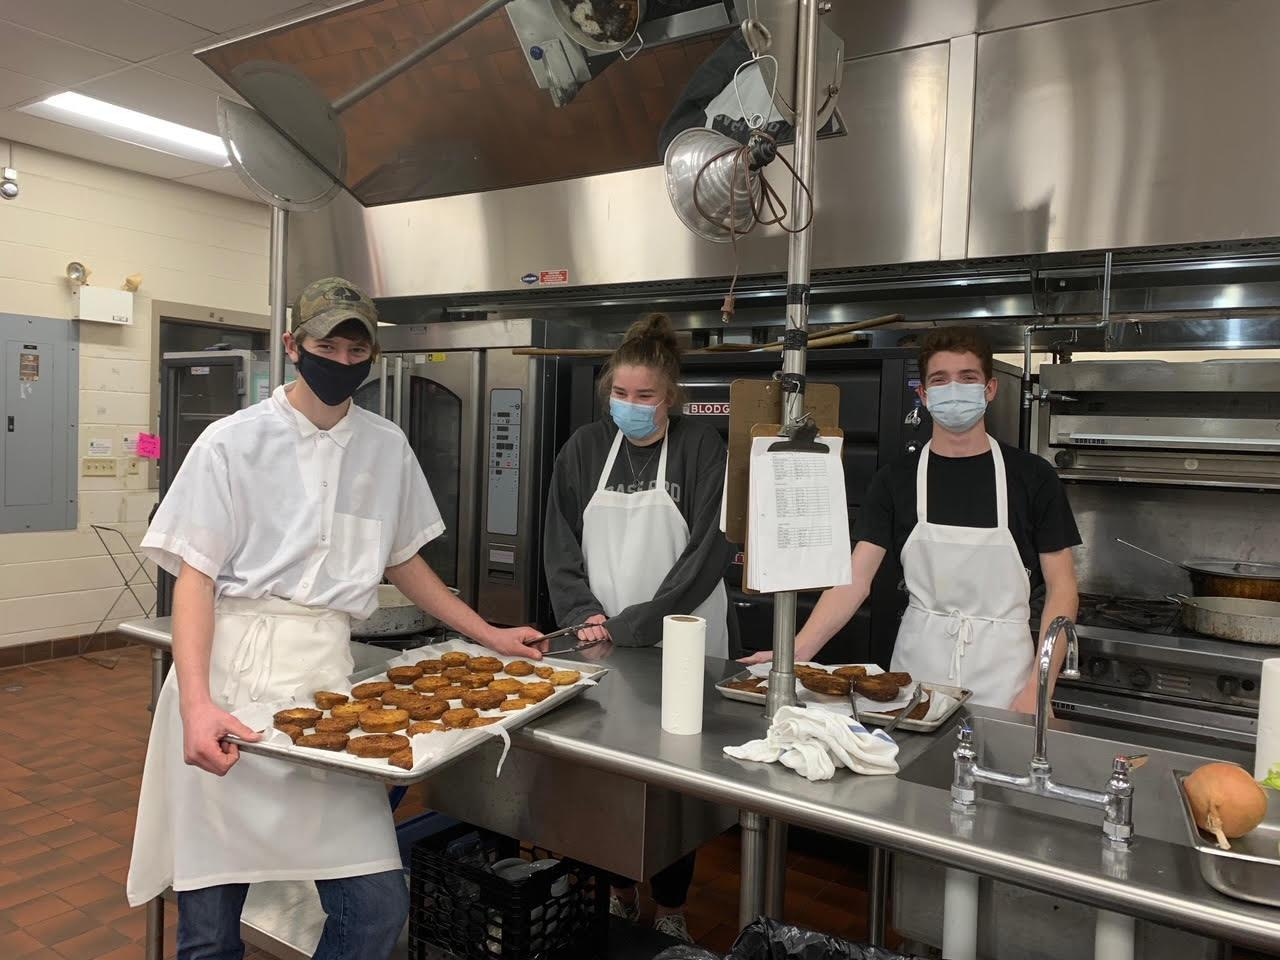 students with food in restaurant kitchen